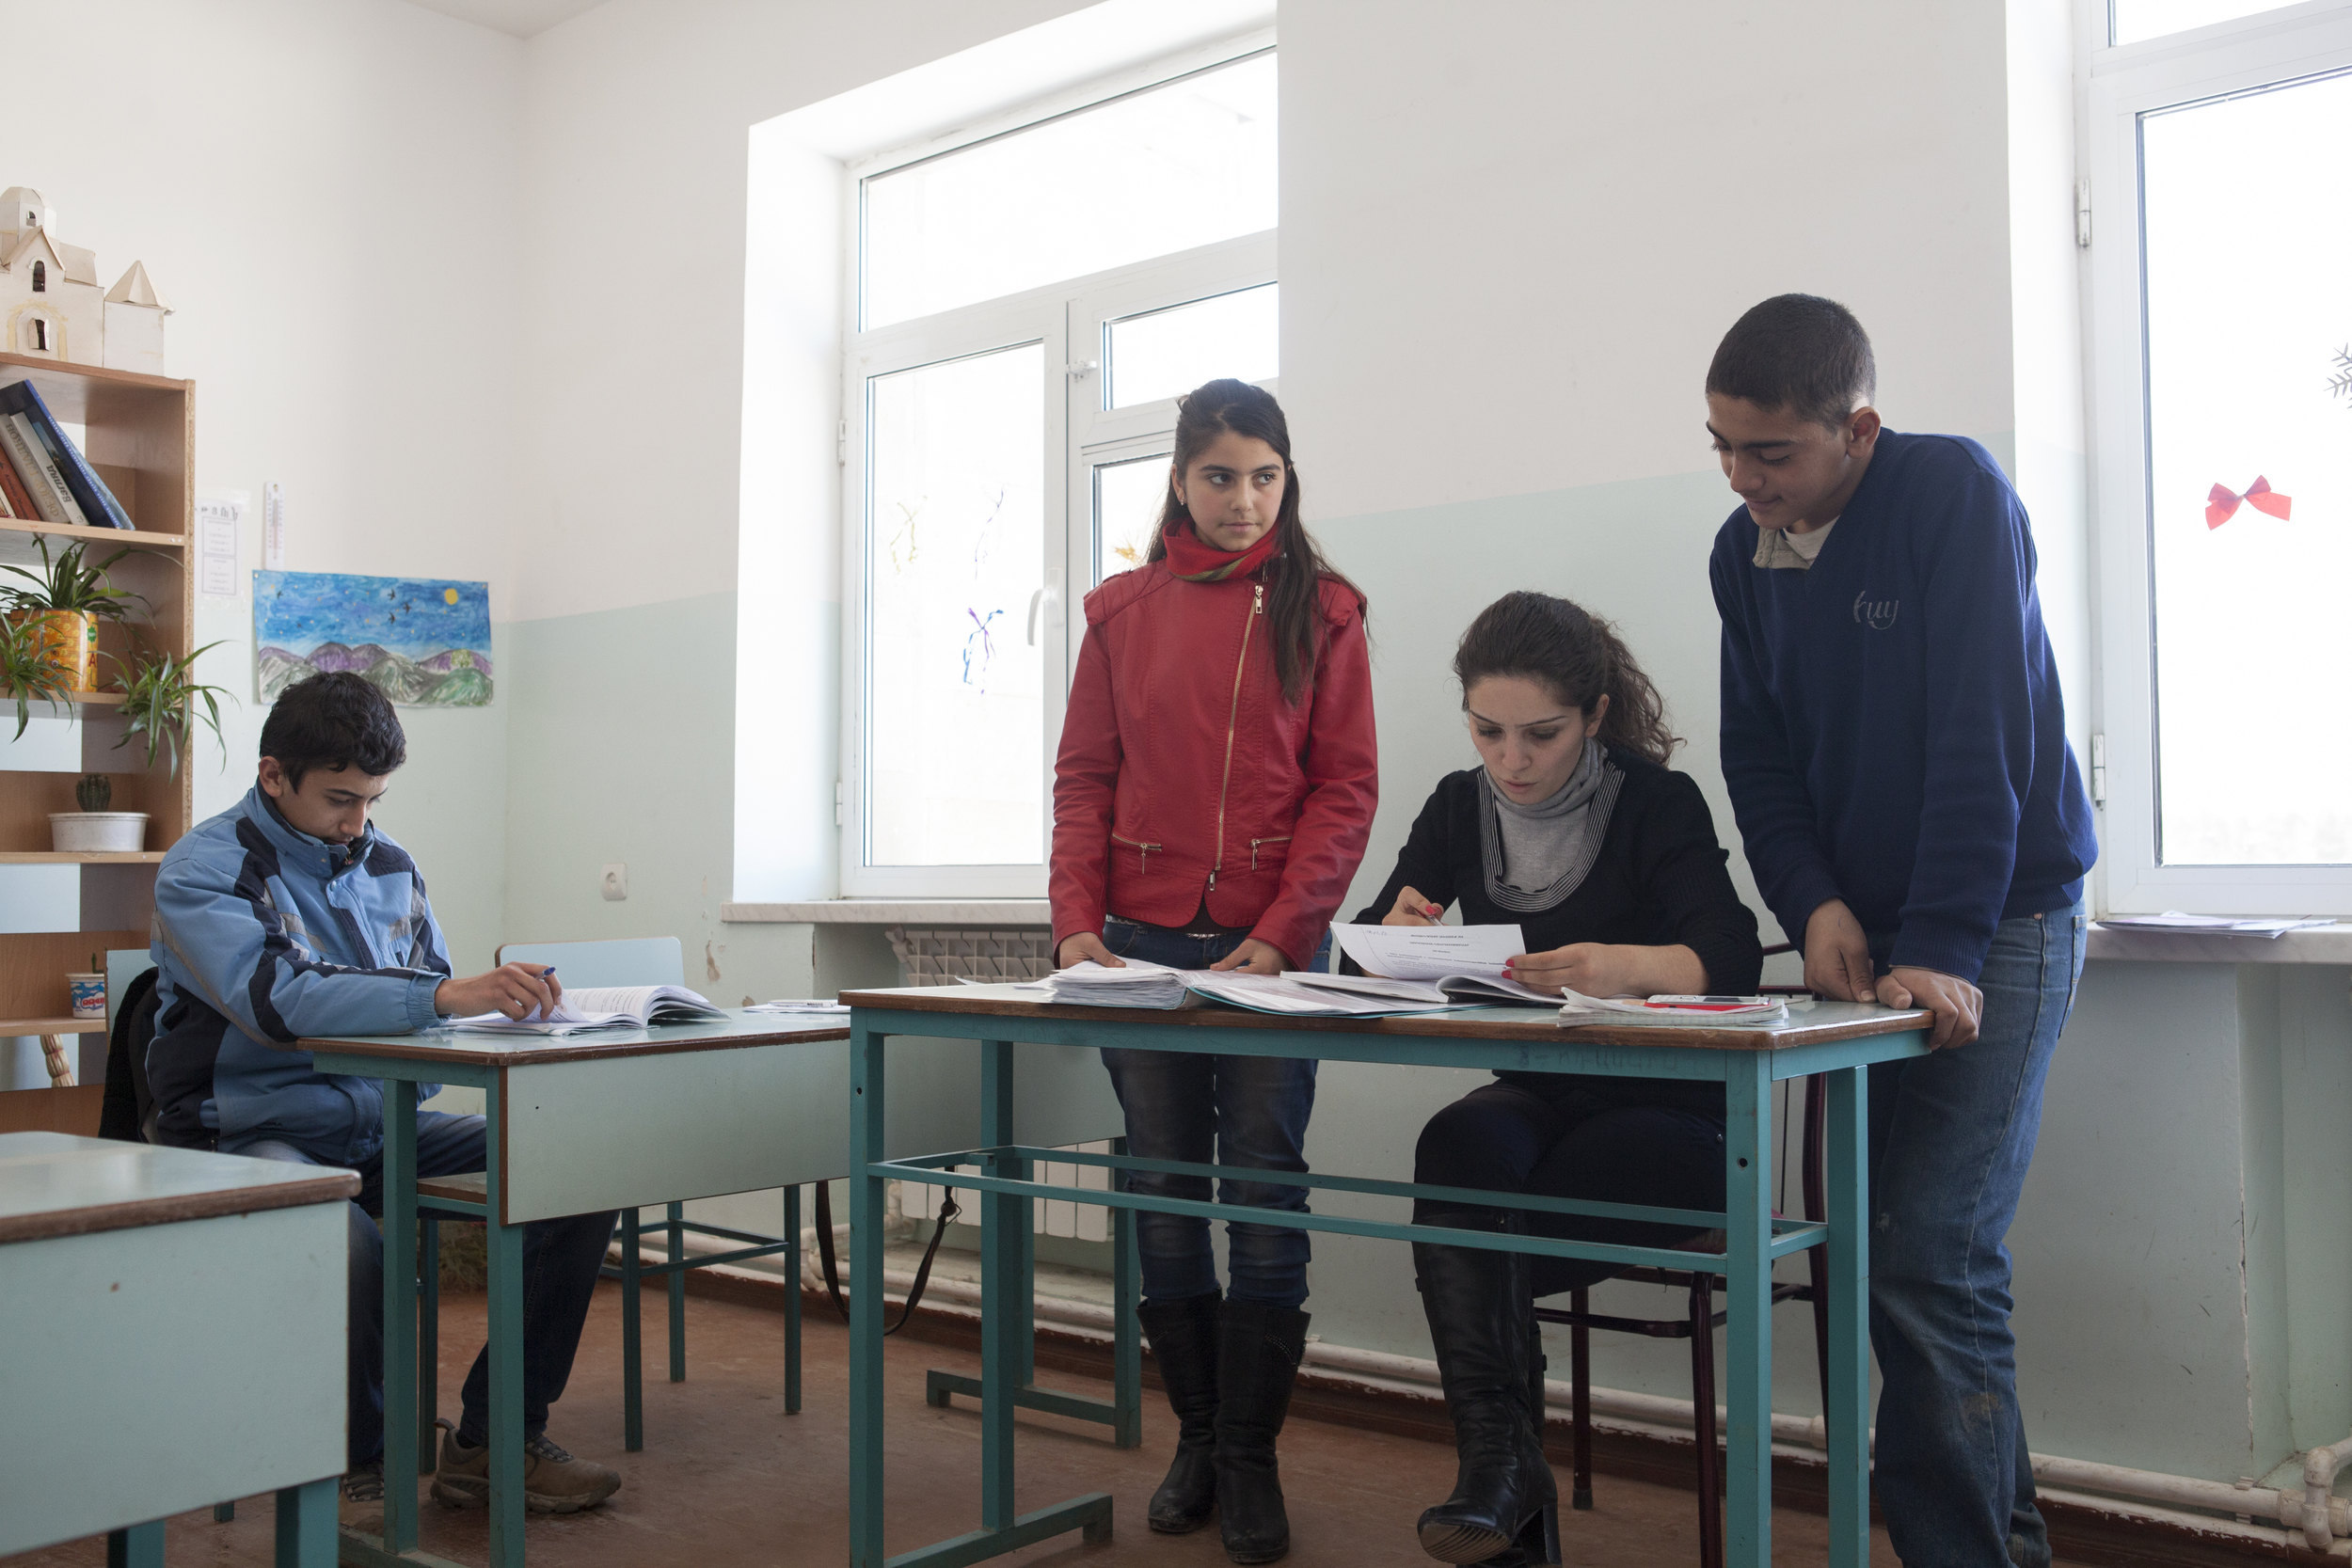 A Syrian-Armenian teenager (dressed in blue)among local classmates in the Kashatagh region of Nagorno-Karabakh.